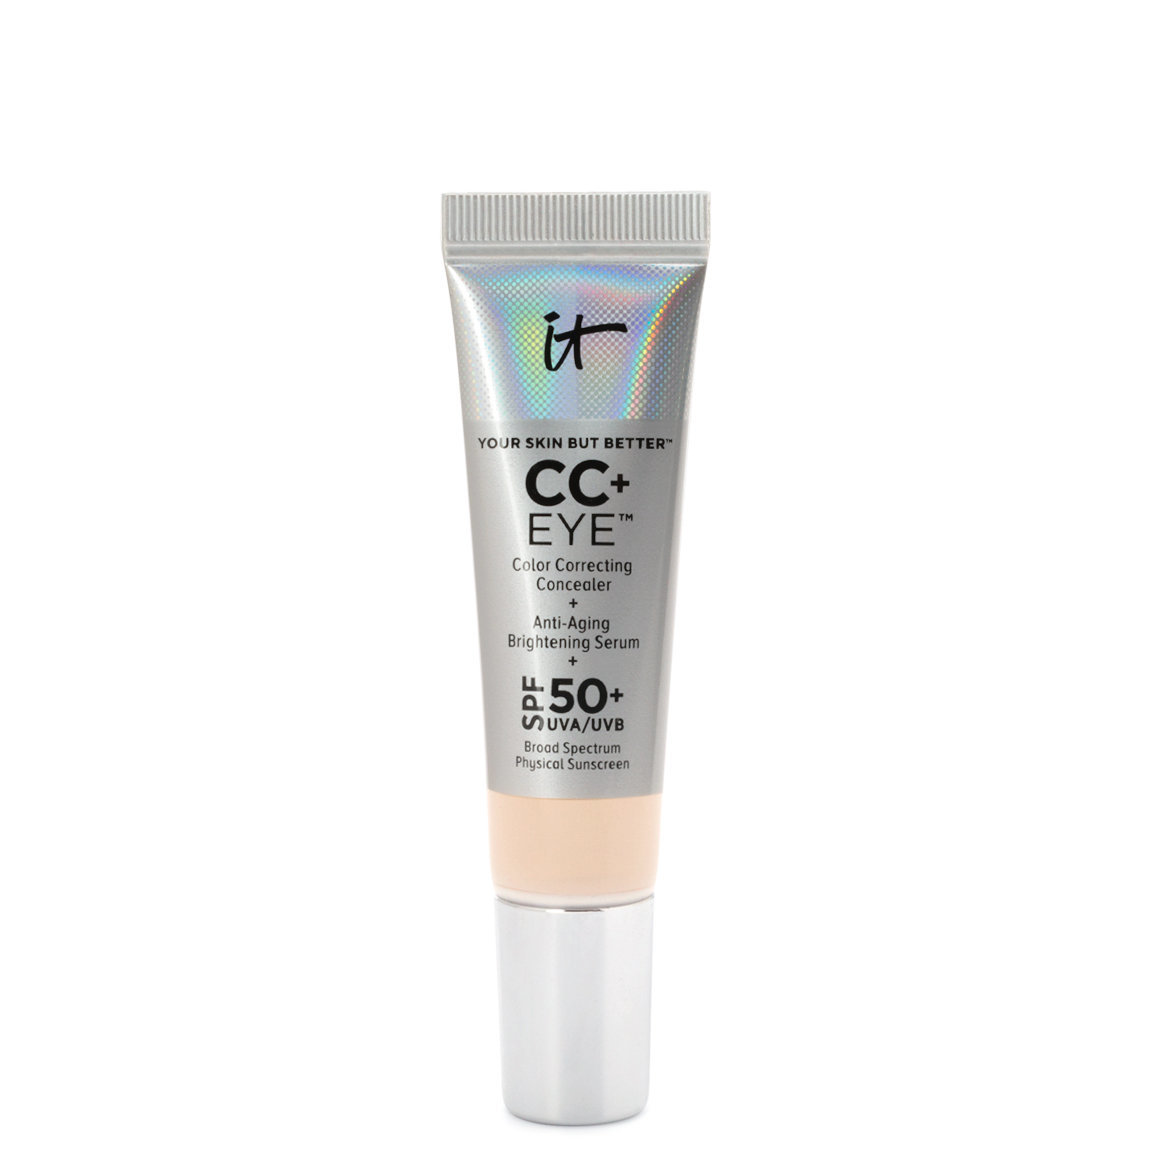 IT Cosmetics  CC+ Eye Physical SPF 50 Color Correcting Concealer Fair